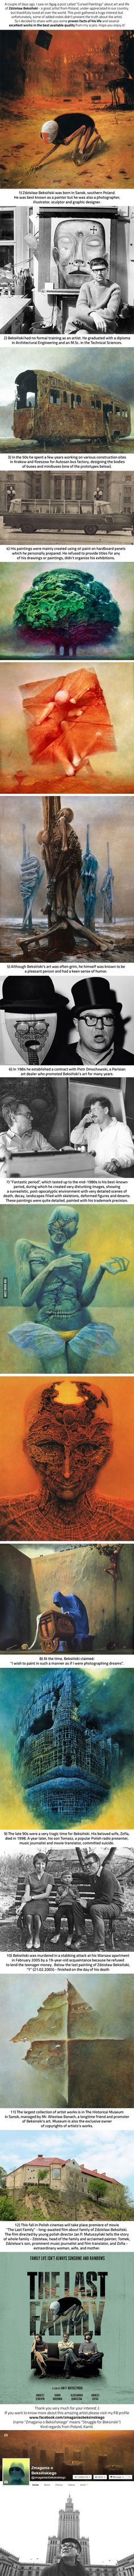 12 facts you should know about Zdzisław Beksiński and some of his surreal paintings